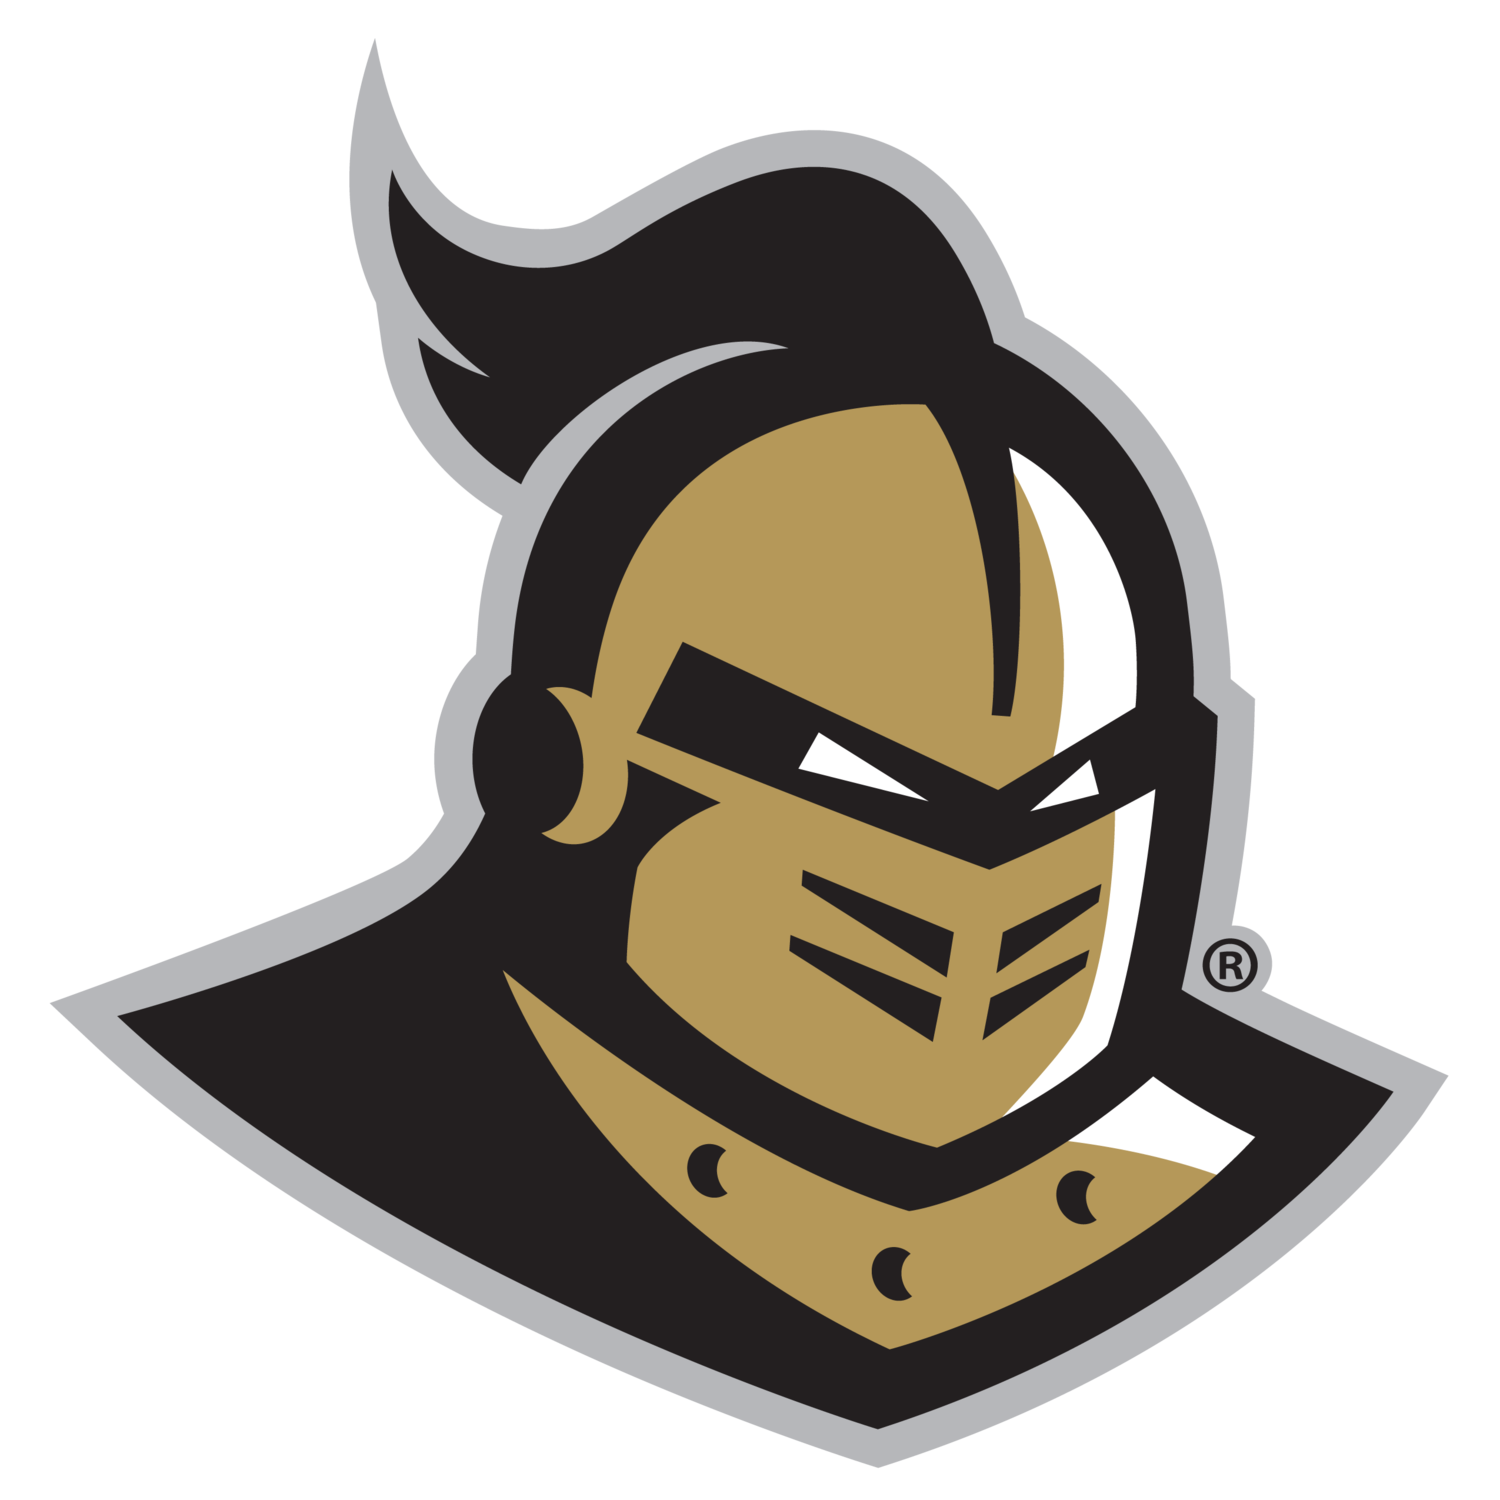 Knights football clipart jpg library download knight logo - Google Search | LOGO design | Pinterest | Knight logo ... jpg library download